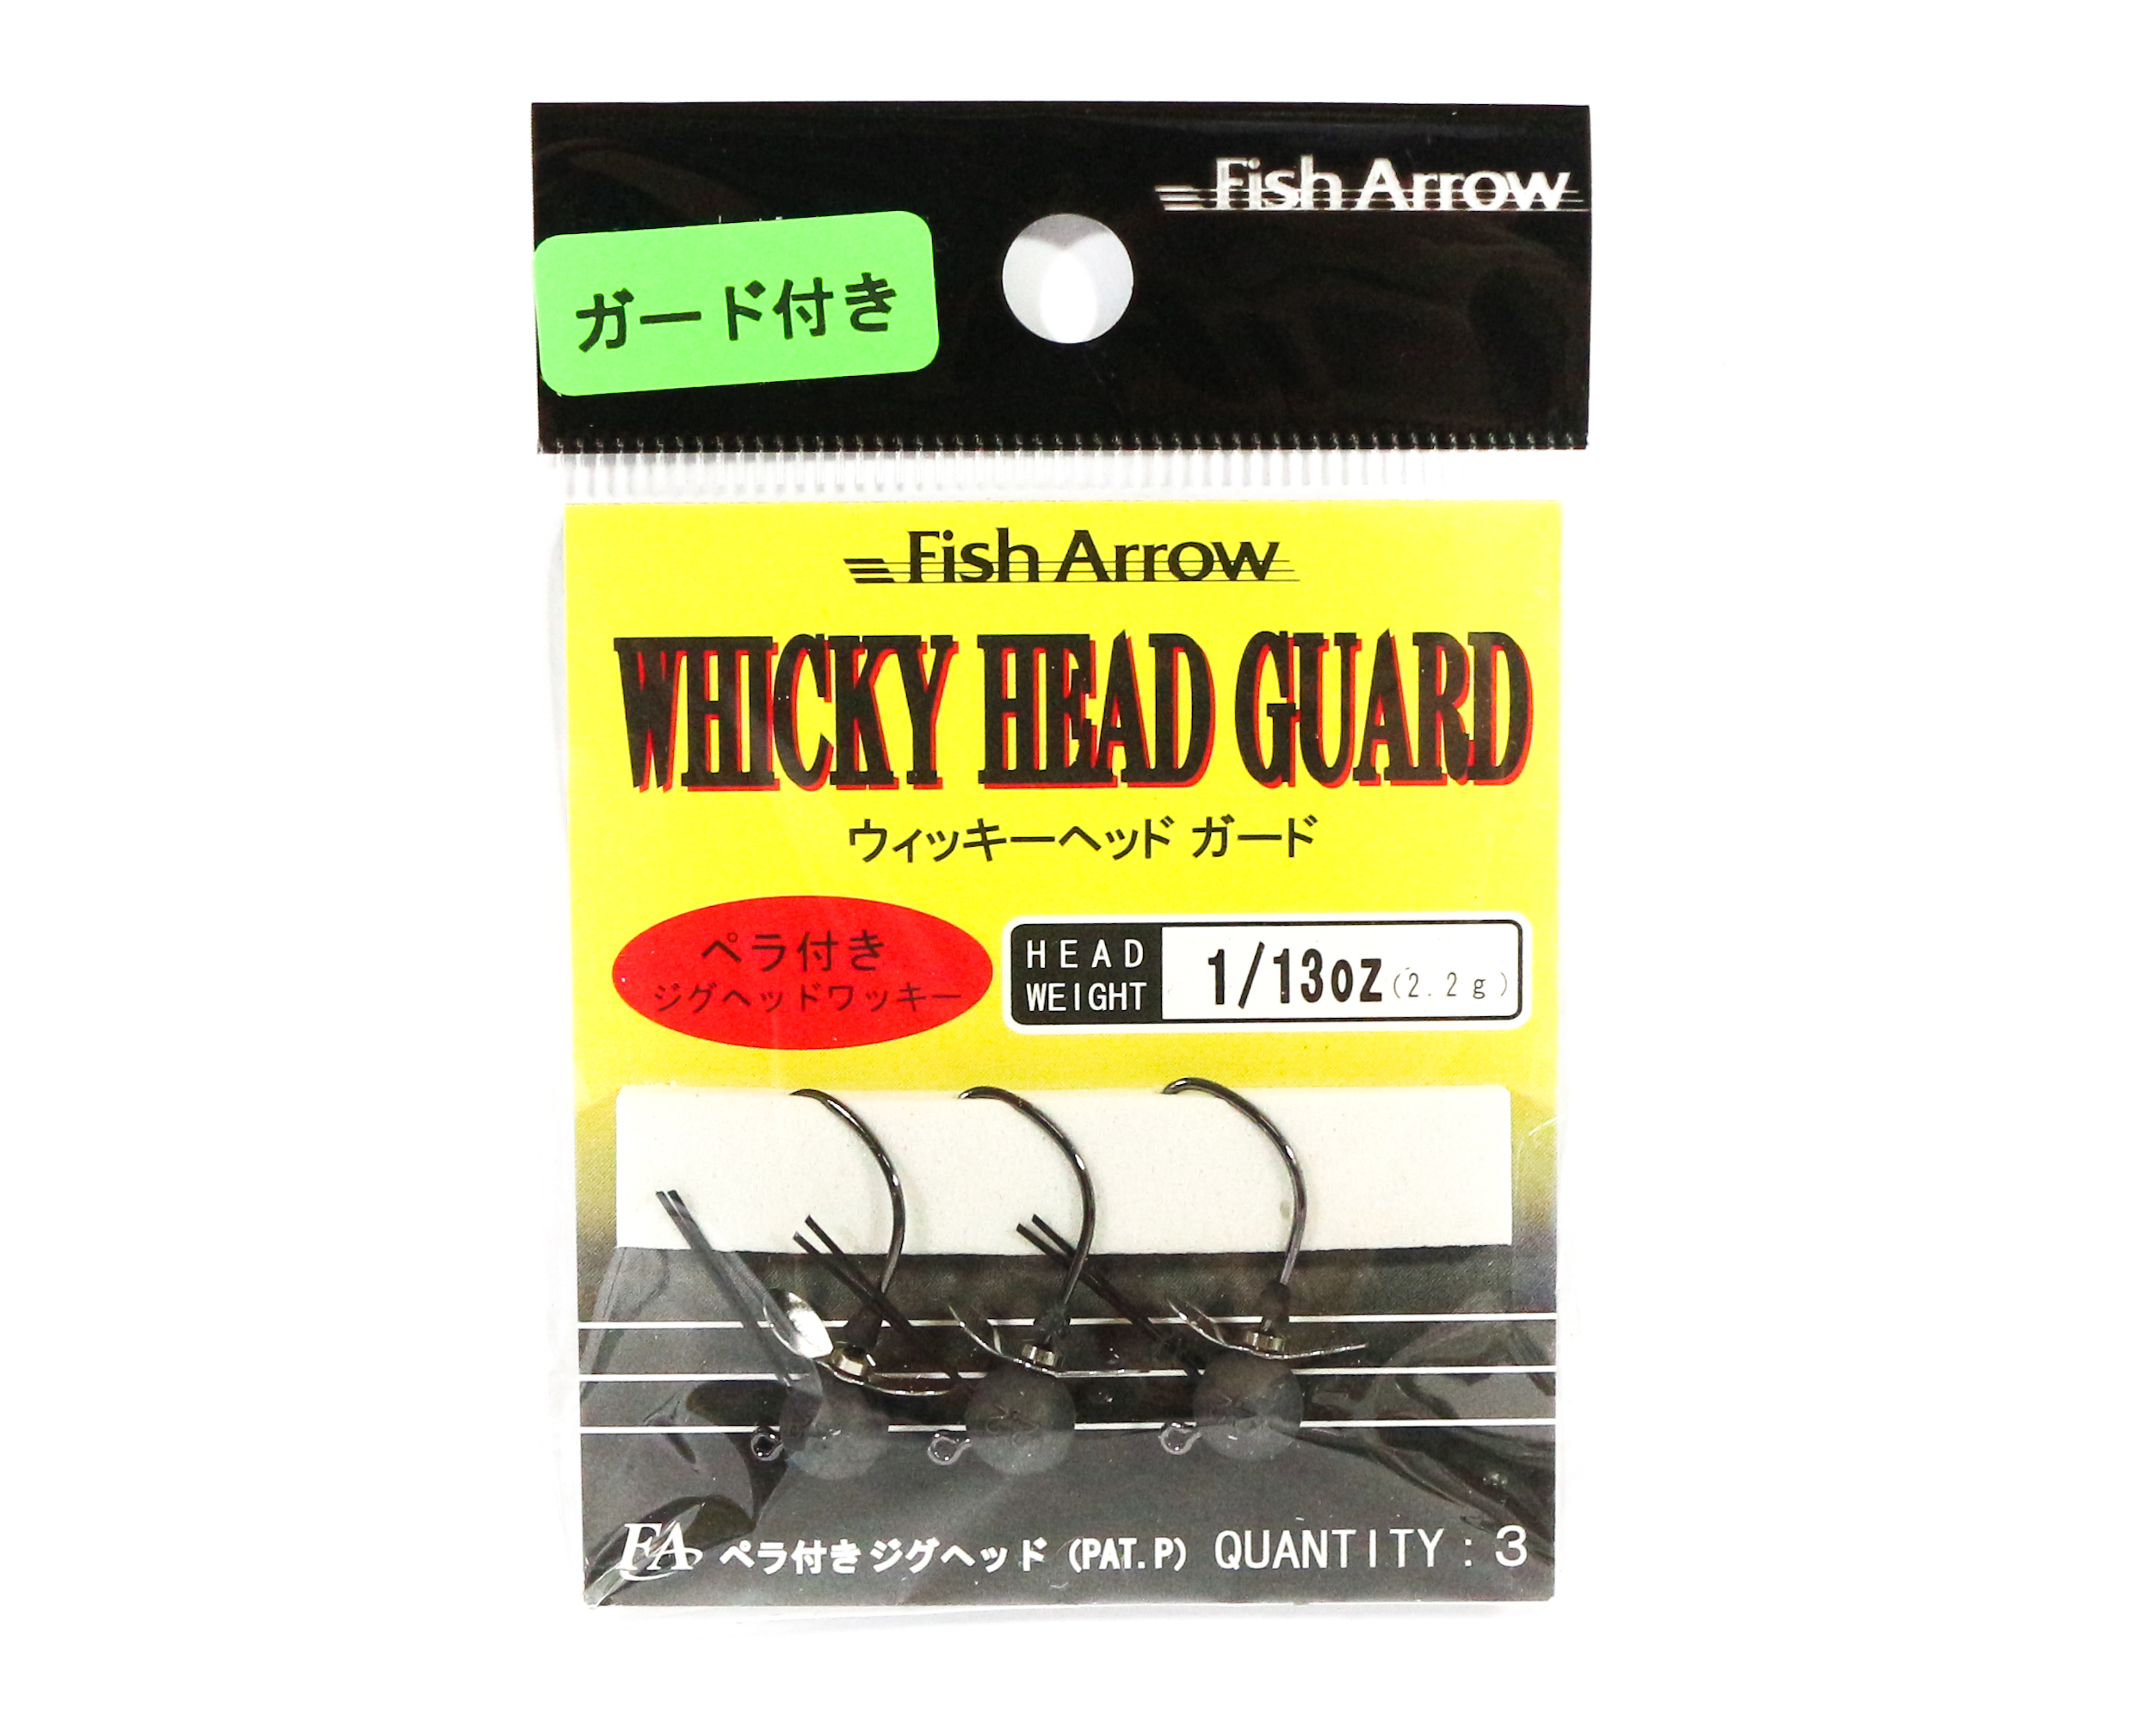 Fish Arrow Jig Head Whicky Head Prop Guard 2.2 grams Size 4 6 Pc per pack (2014)